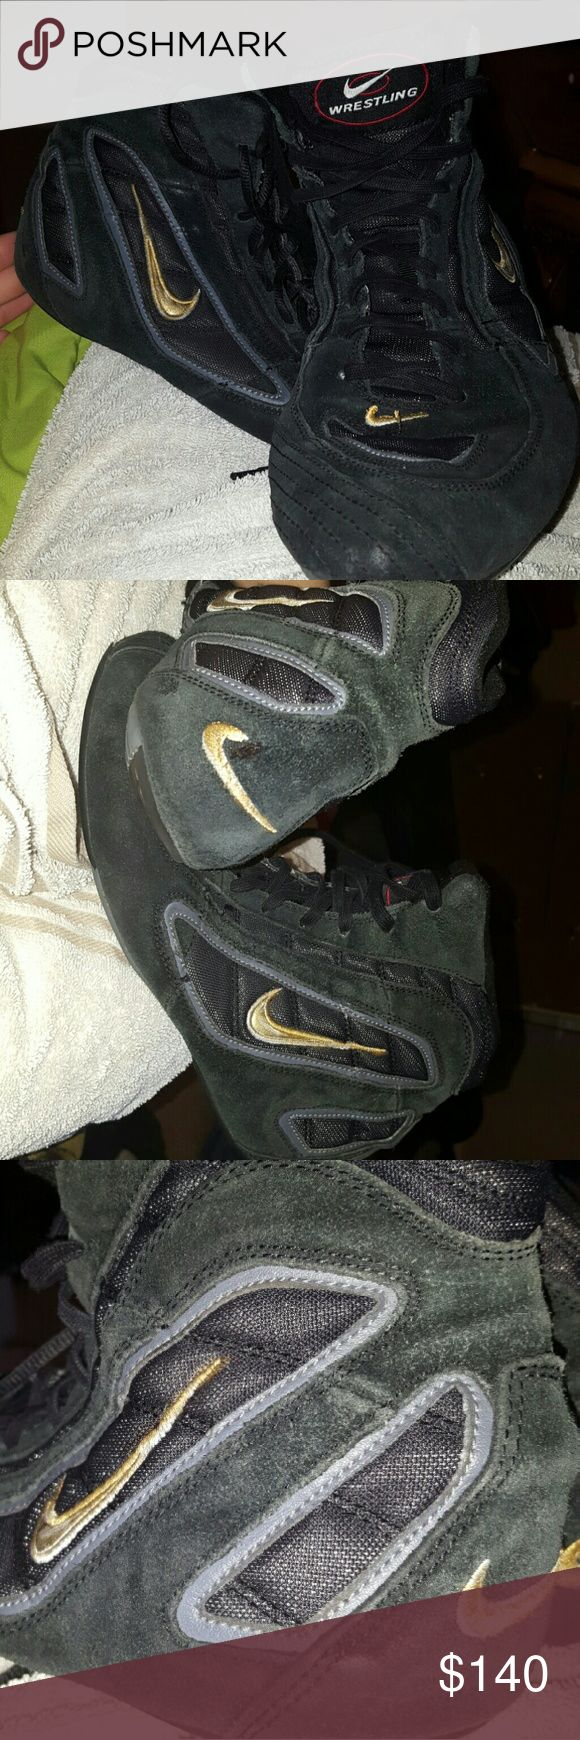 Rare 90's olympic wrestling shoes They are black and gold wrestling shoes wore in the 90s olympic rare Nike Shoes Athletic Shoes